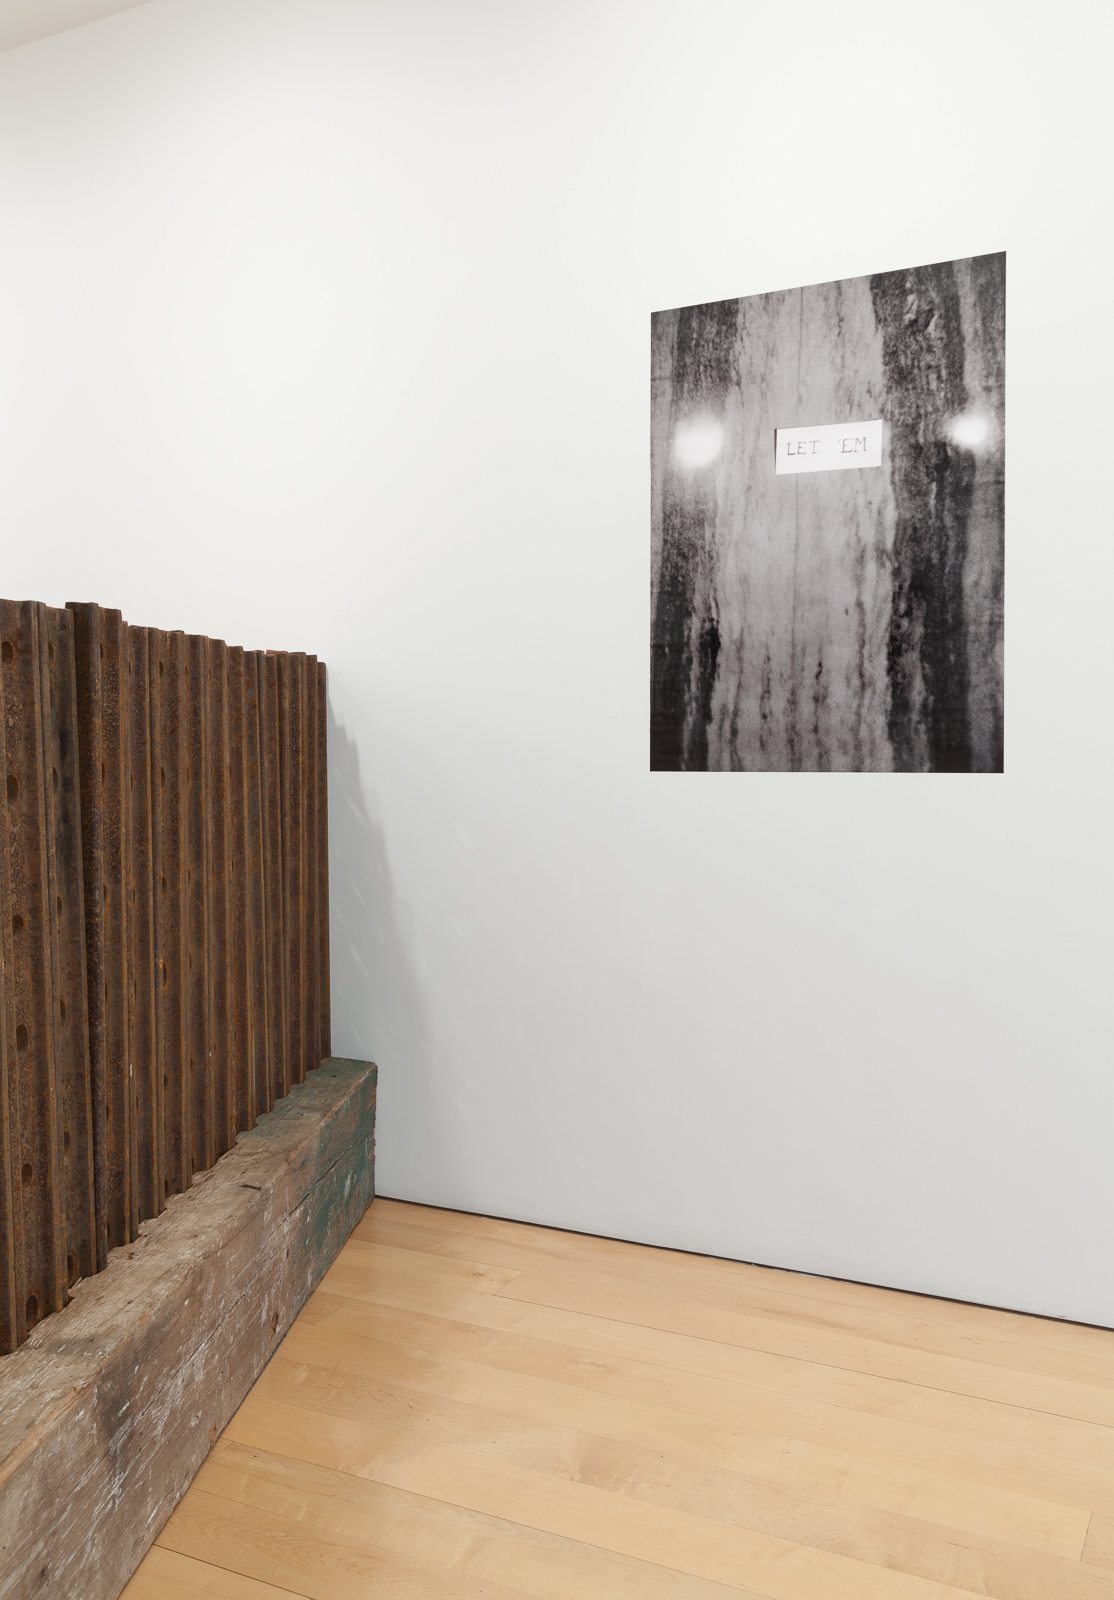 Trisha Donnelly's Let 'Em (2015) and Marianne Vitale's Joint Fence (for Jasper) (2015), in Six Doors at the Other Room, New York